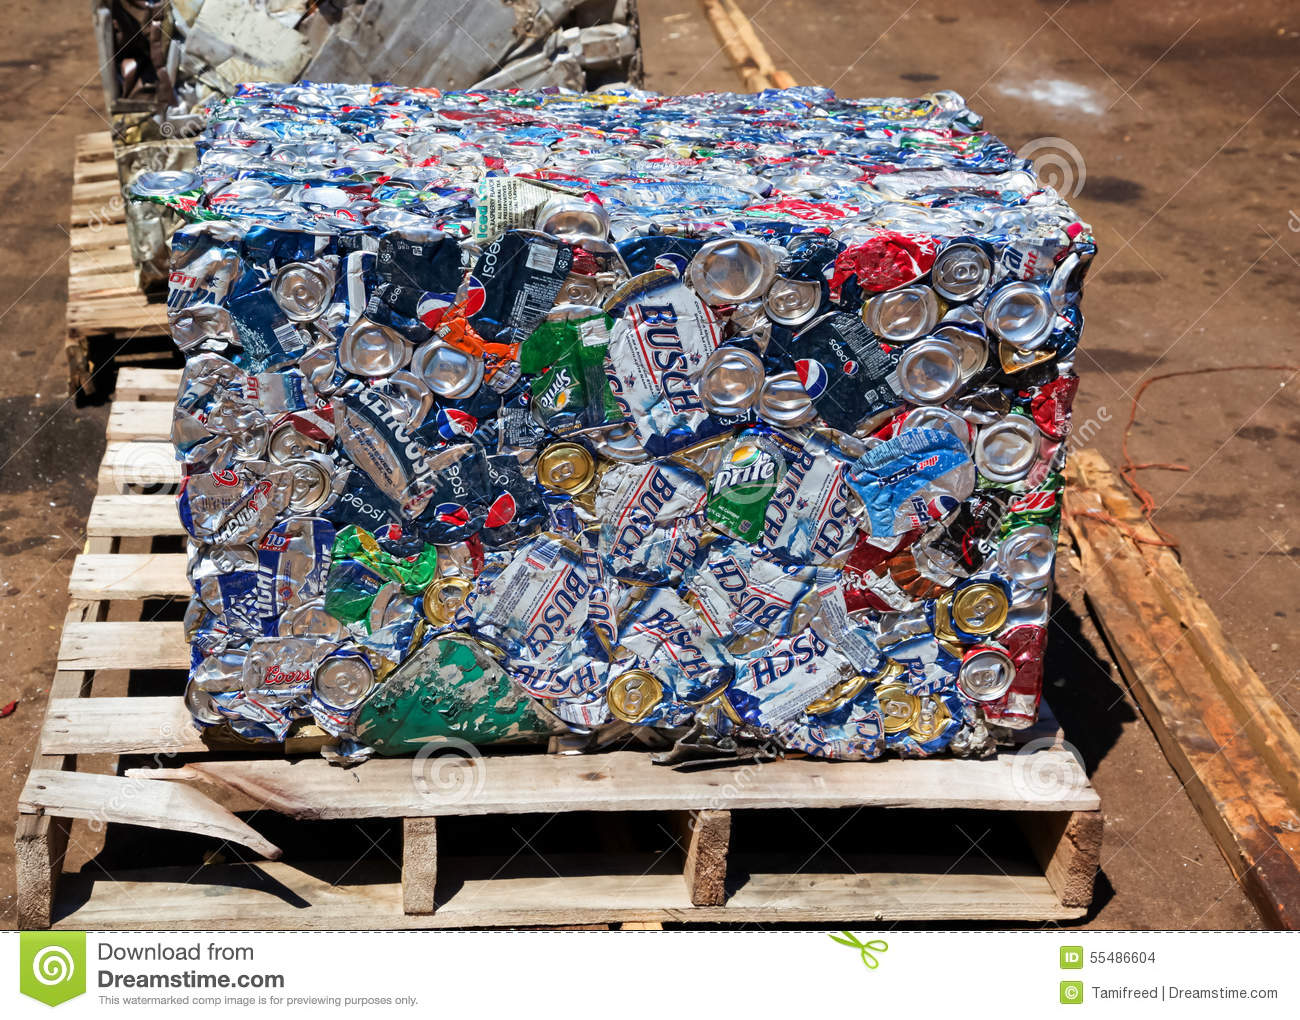 Editorial Stock Image Recycle Can Cube Coeur D Alene Id July  pressed Aluminum Cans Sits Wooden Pallet Sunshine Recycling Yard Image55486604 additionally The Iron Ore Scrap Correlation Does Correlate Steel Prices likewise Casselberry Fl moreover How To Get Plastic Off Copper Wire additionally Clean Your Home Before The Holidays Tips From Your Local Metal Recycling Experts. on scrap aluminum can prices